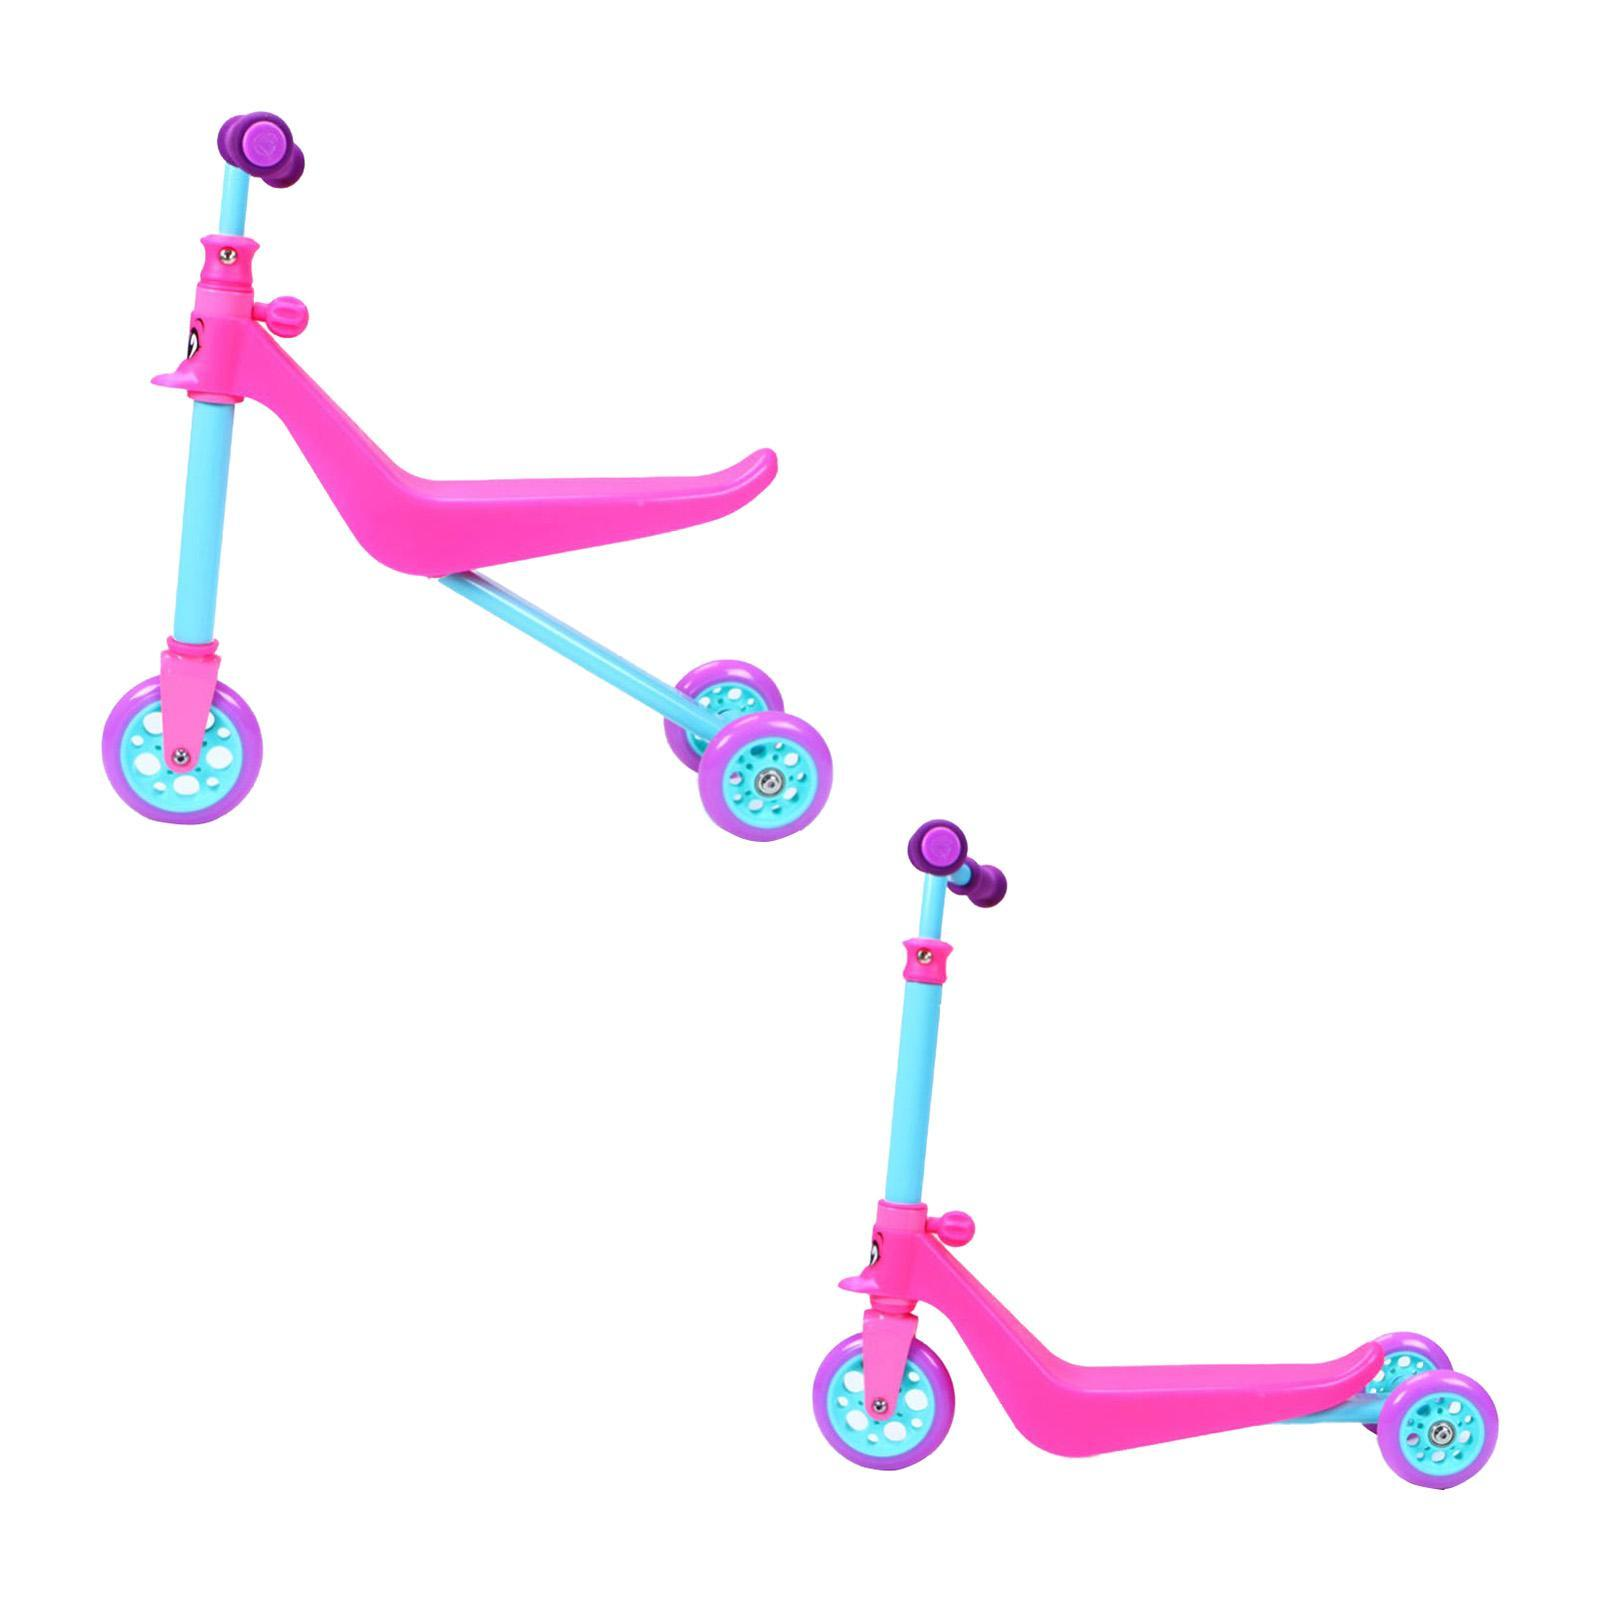 Zycom Zykster 2-In-1 Scooter-And-Balance Trike - Teal/purple/pink By Redmart.